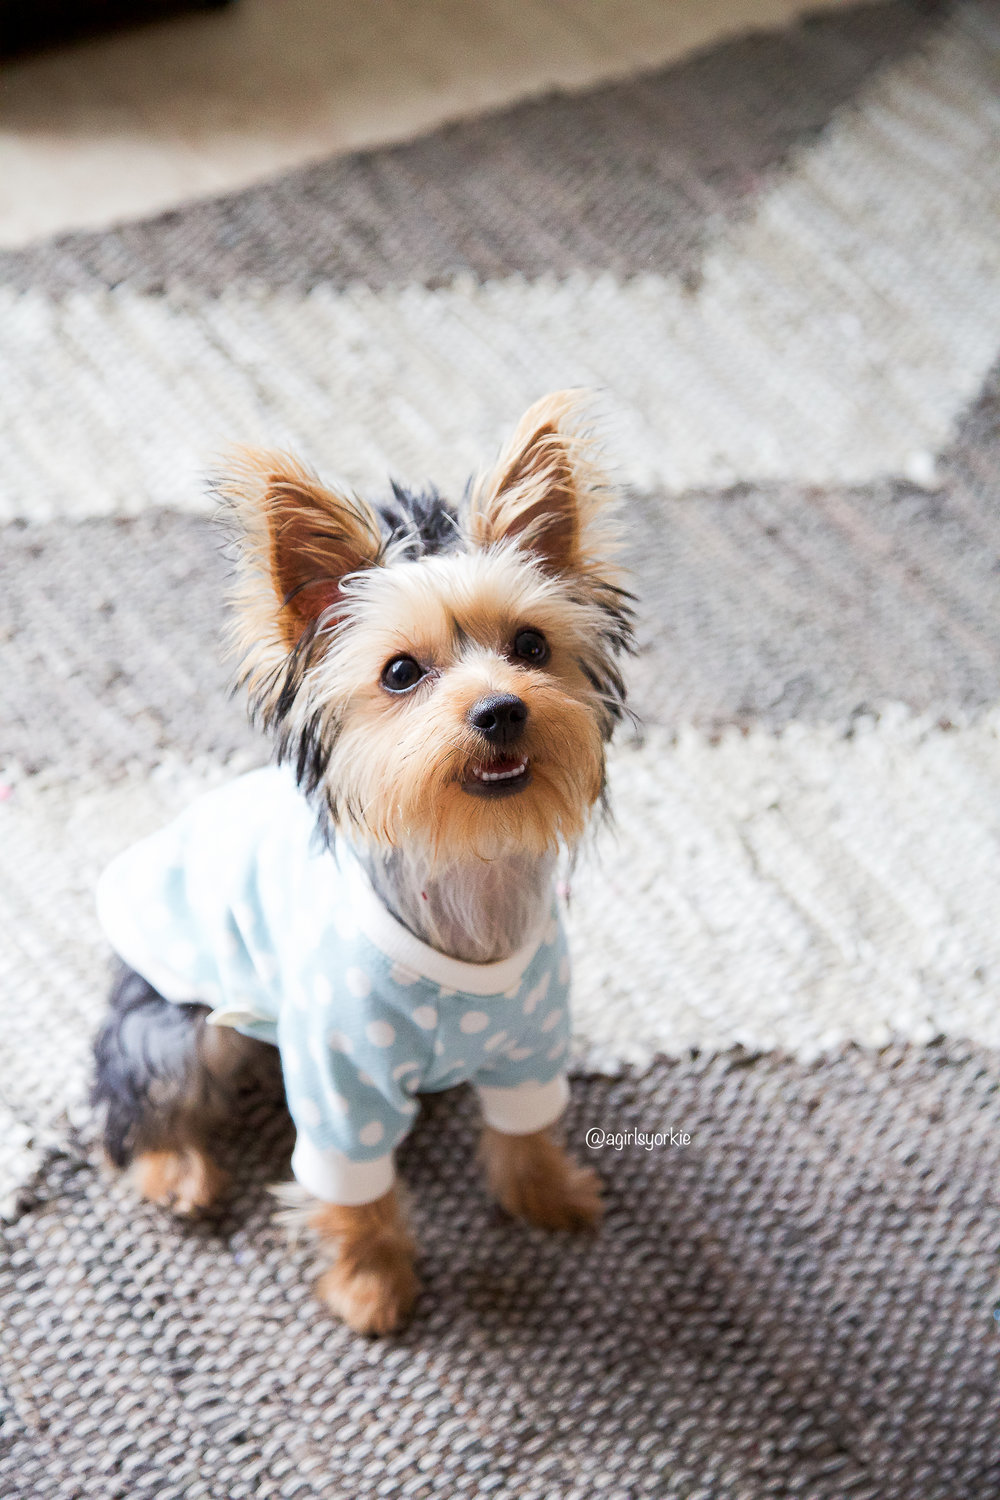 Bailey - Hi! I'm Bailey, a chic Yorkshire Terrier from Houston, Texas, who loves to show off the latest fashion trends on Instagram!  I am still a baby (born in January 2017), but I have been told that I already have more clothes than my daddy!  When I am not posing for fashion shoots, you will find me and mommy out and about.  We do everything together - shopping, dining, and traveling (by foot, car, and even airplane)!